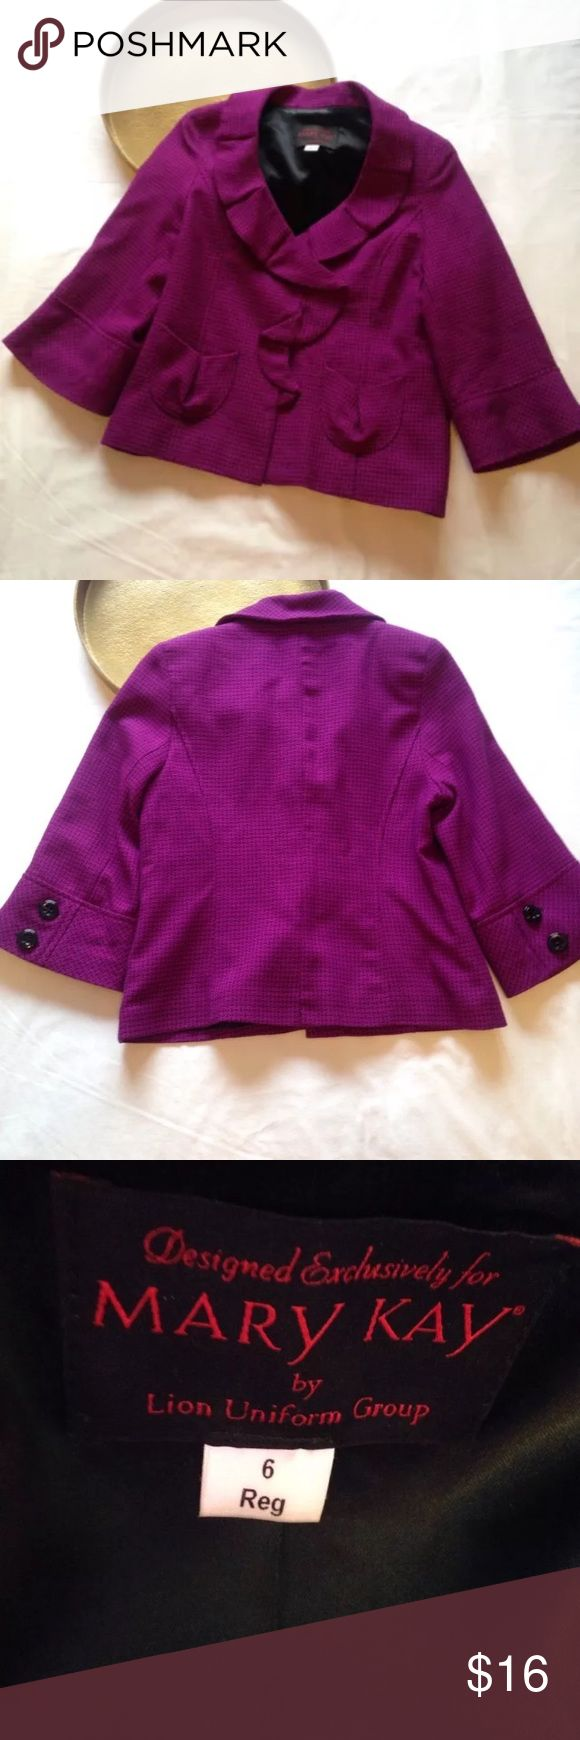 Mark Kay Purple Blazer, Size 6 Preowned. See photos for details. Mary Kay Jackets & Coats Blazers